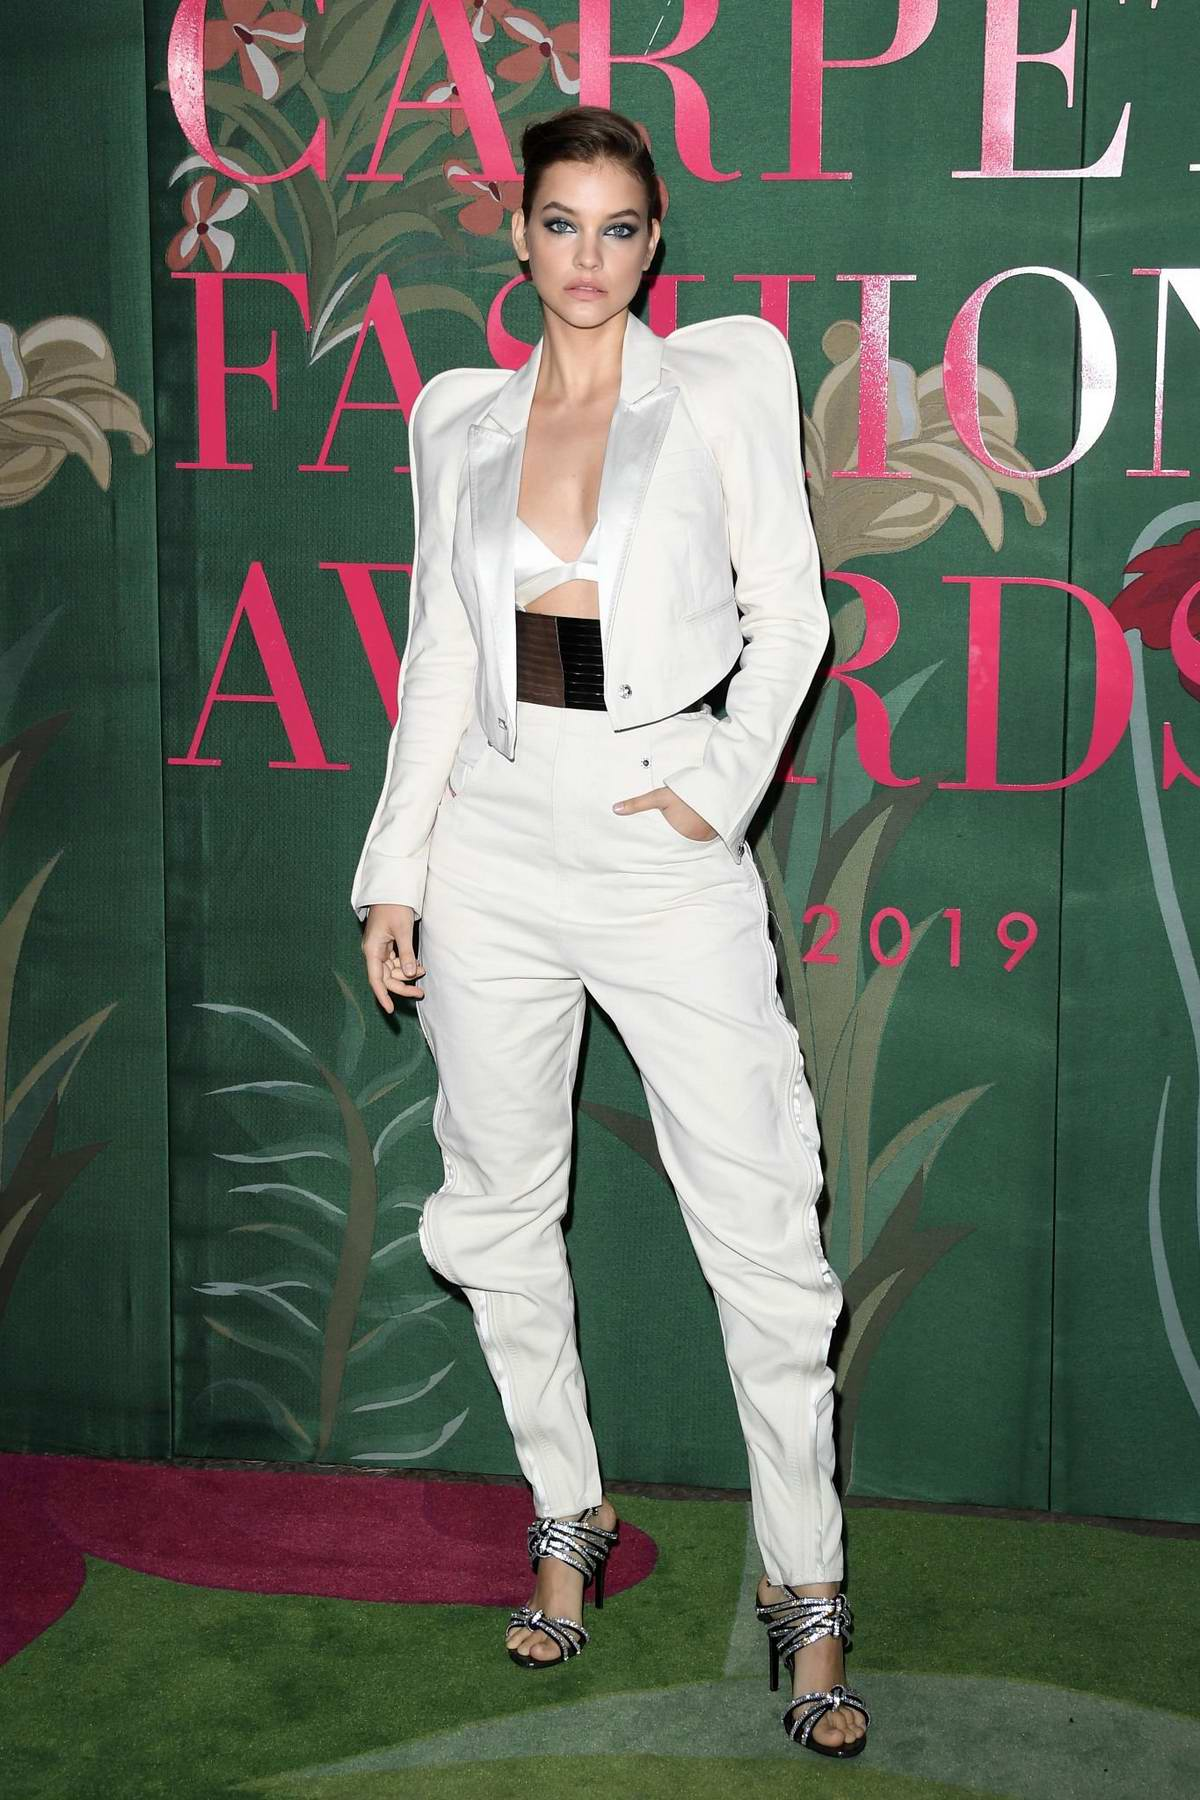 Barbara Palvin attends The Green Carpet Fashion Awards 2019 in Milan, Italy